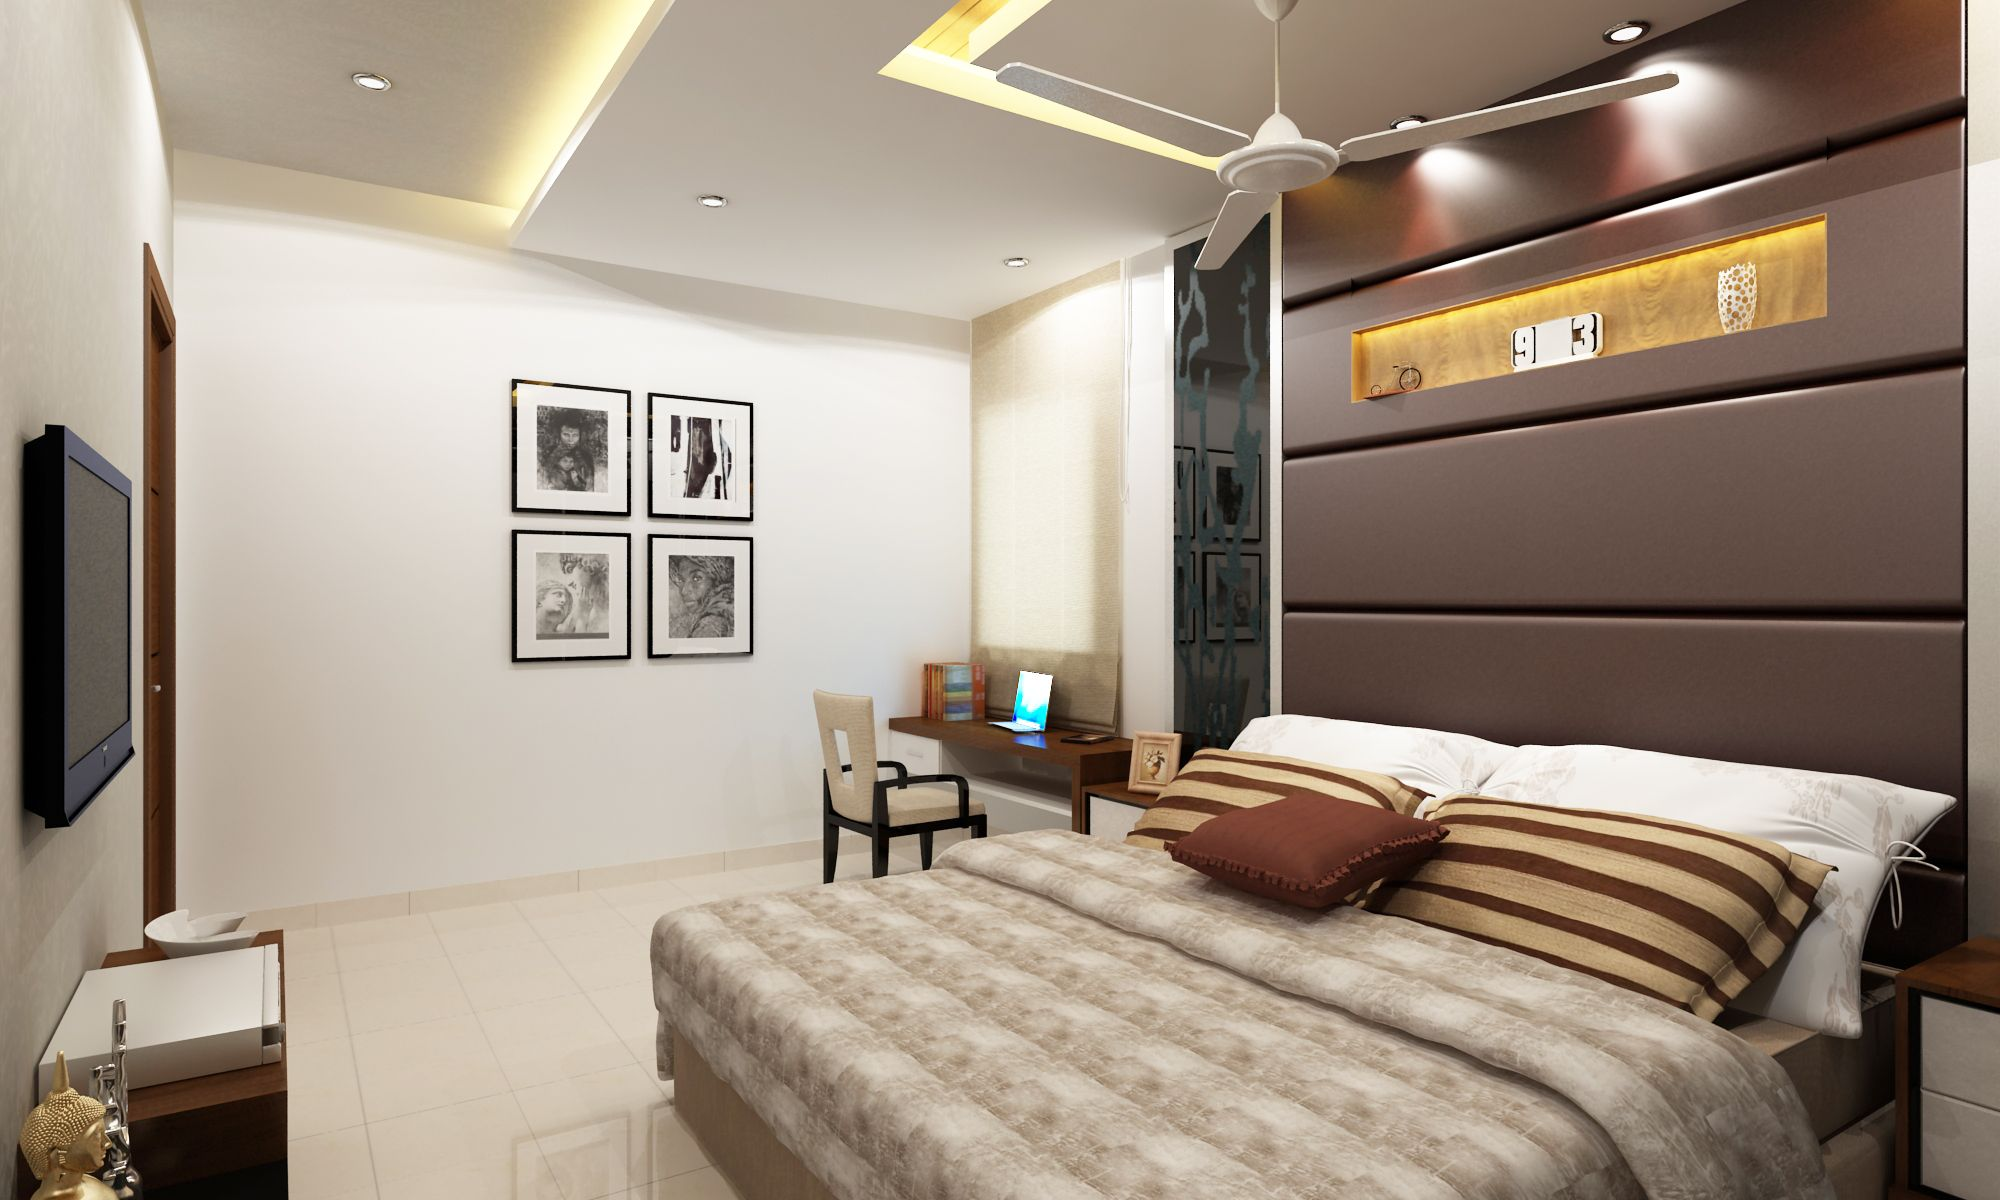 Bedroomdesign Nice Bedroom Elevation Design If You Need Any Related